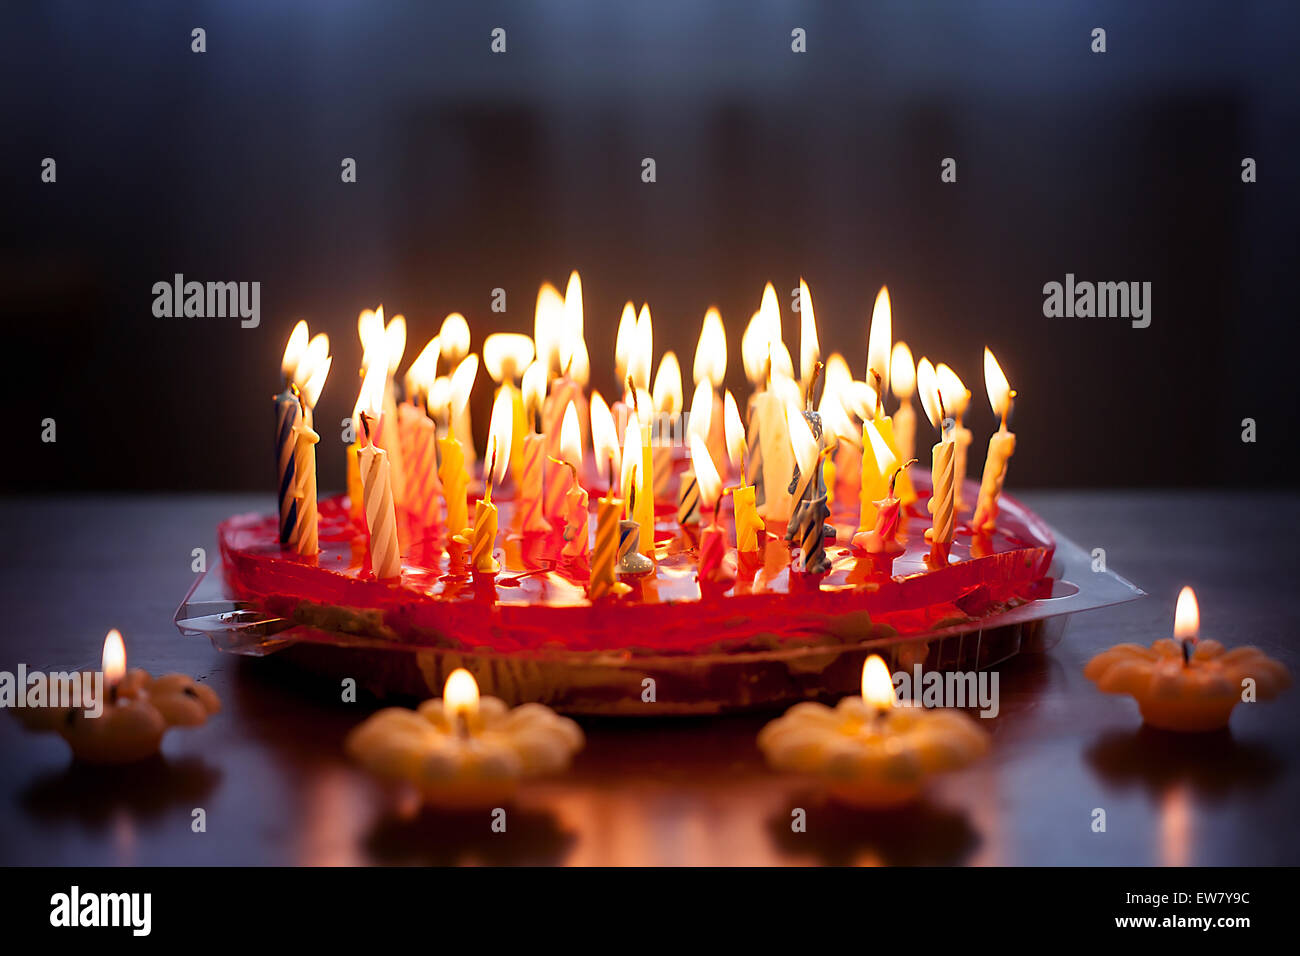 Strawberry cake with lots of candles on a table - Stock Image